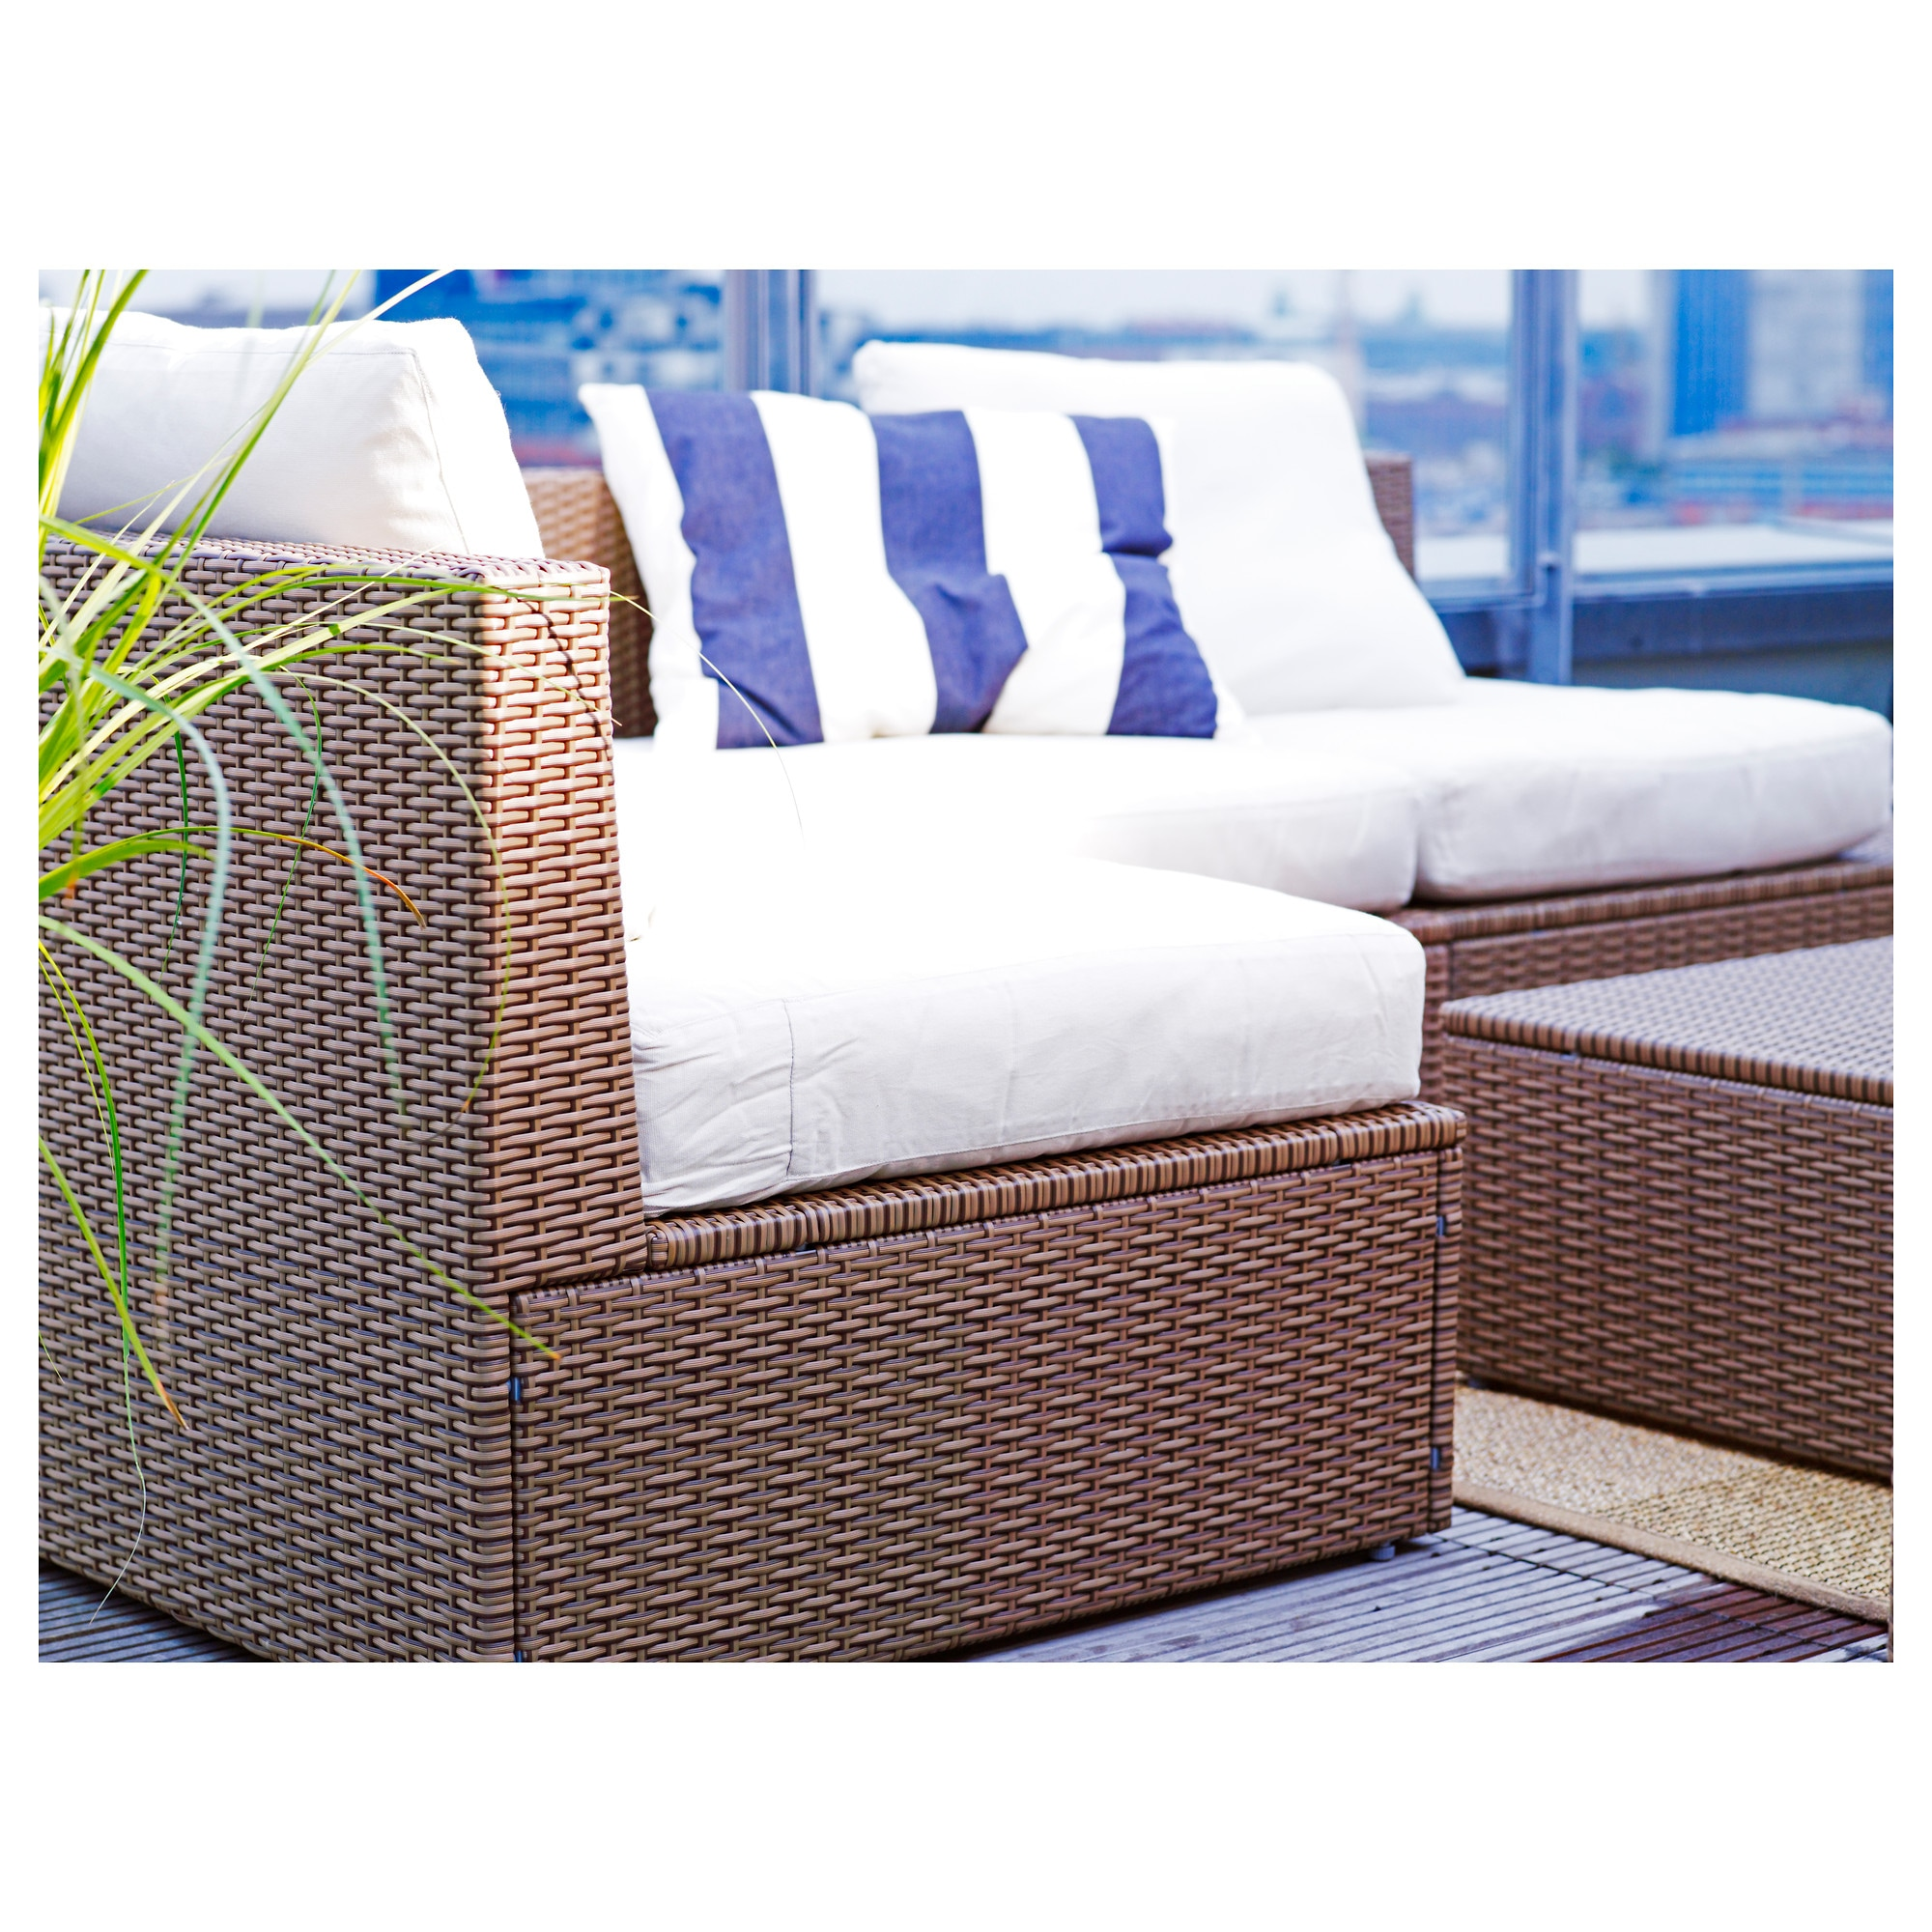 ikea outdoor patio furniture. ikea outdoor patio furniture